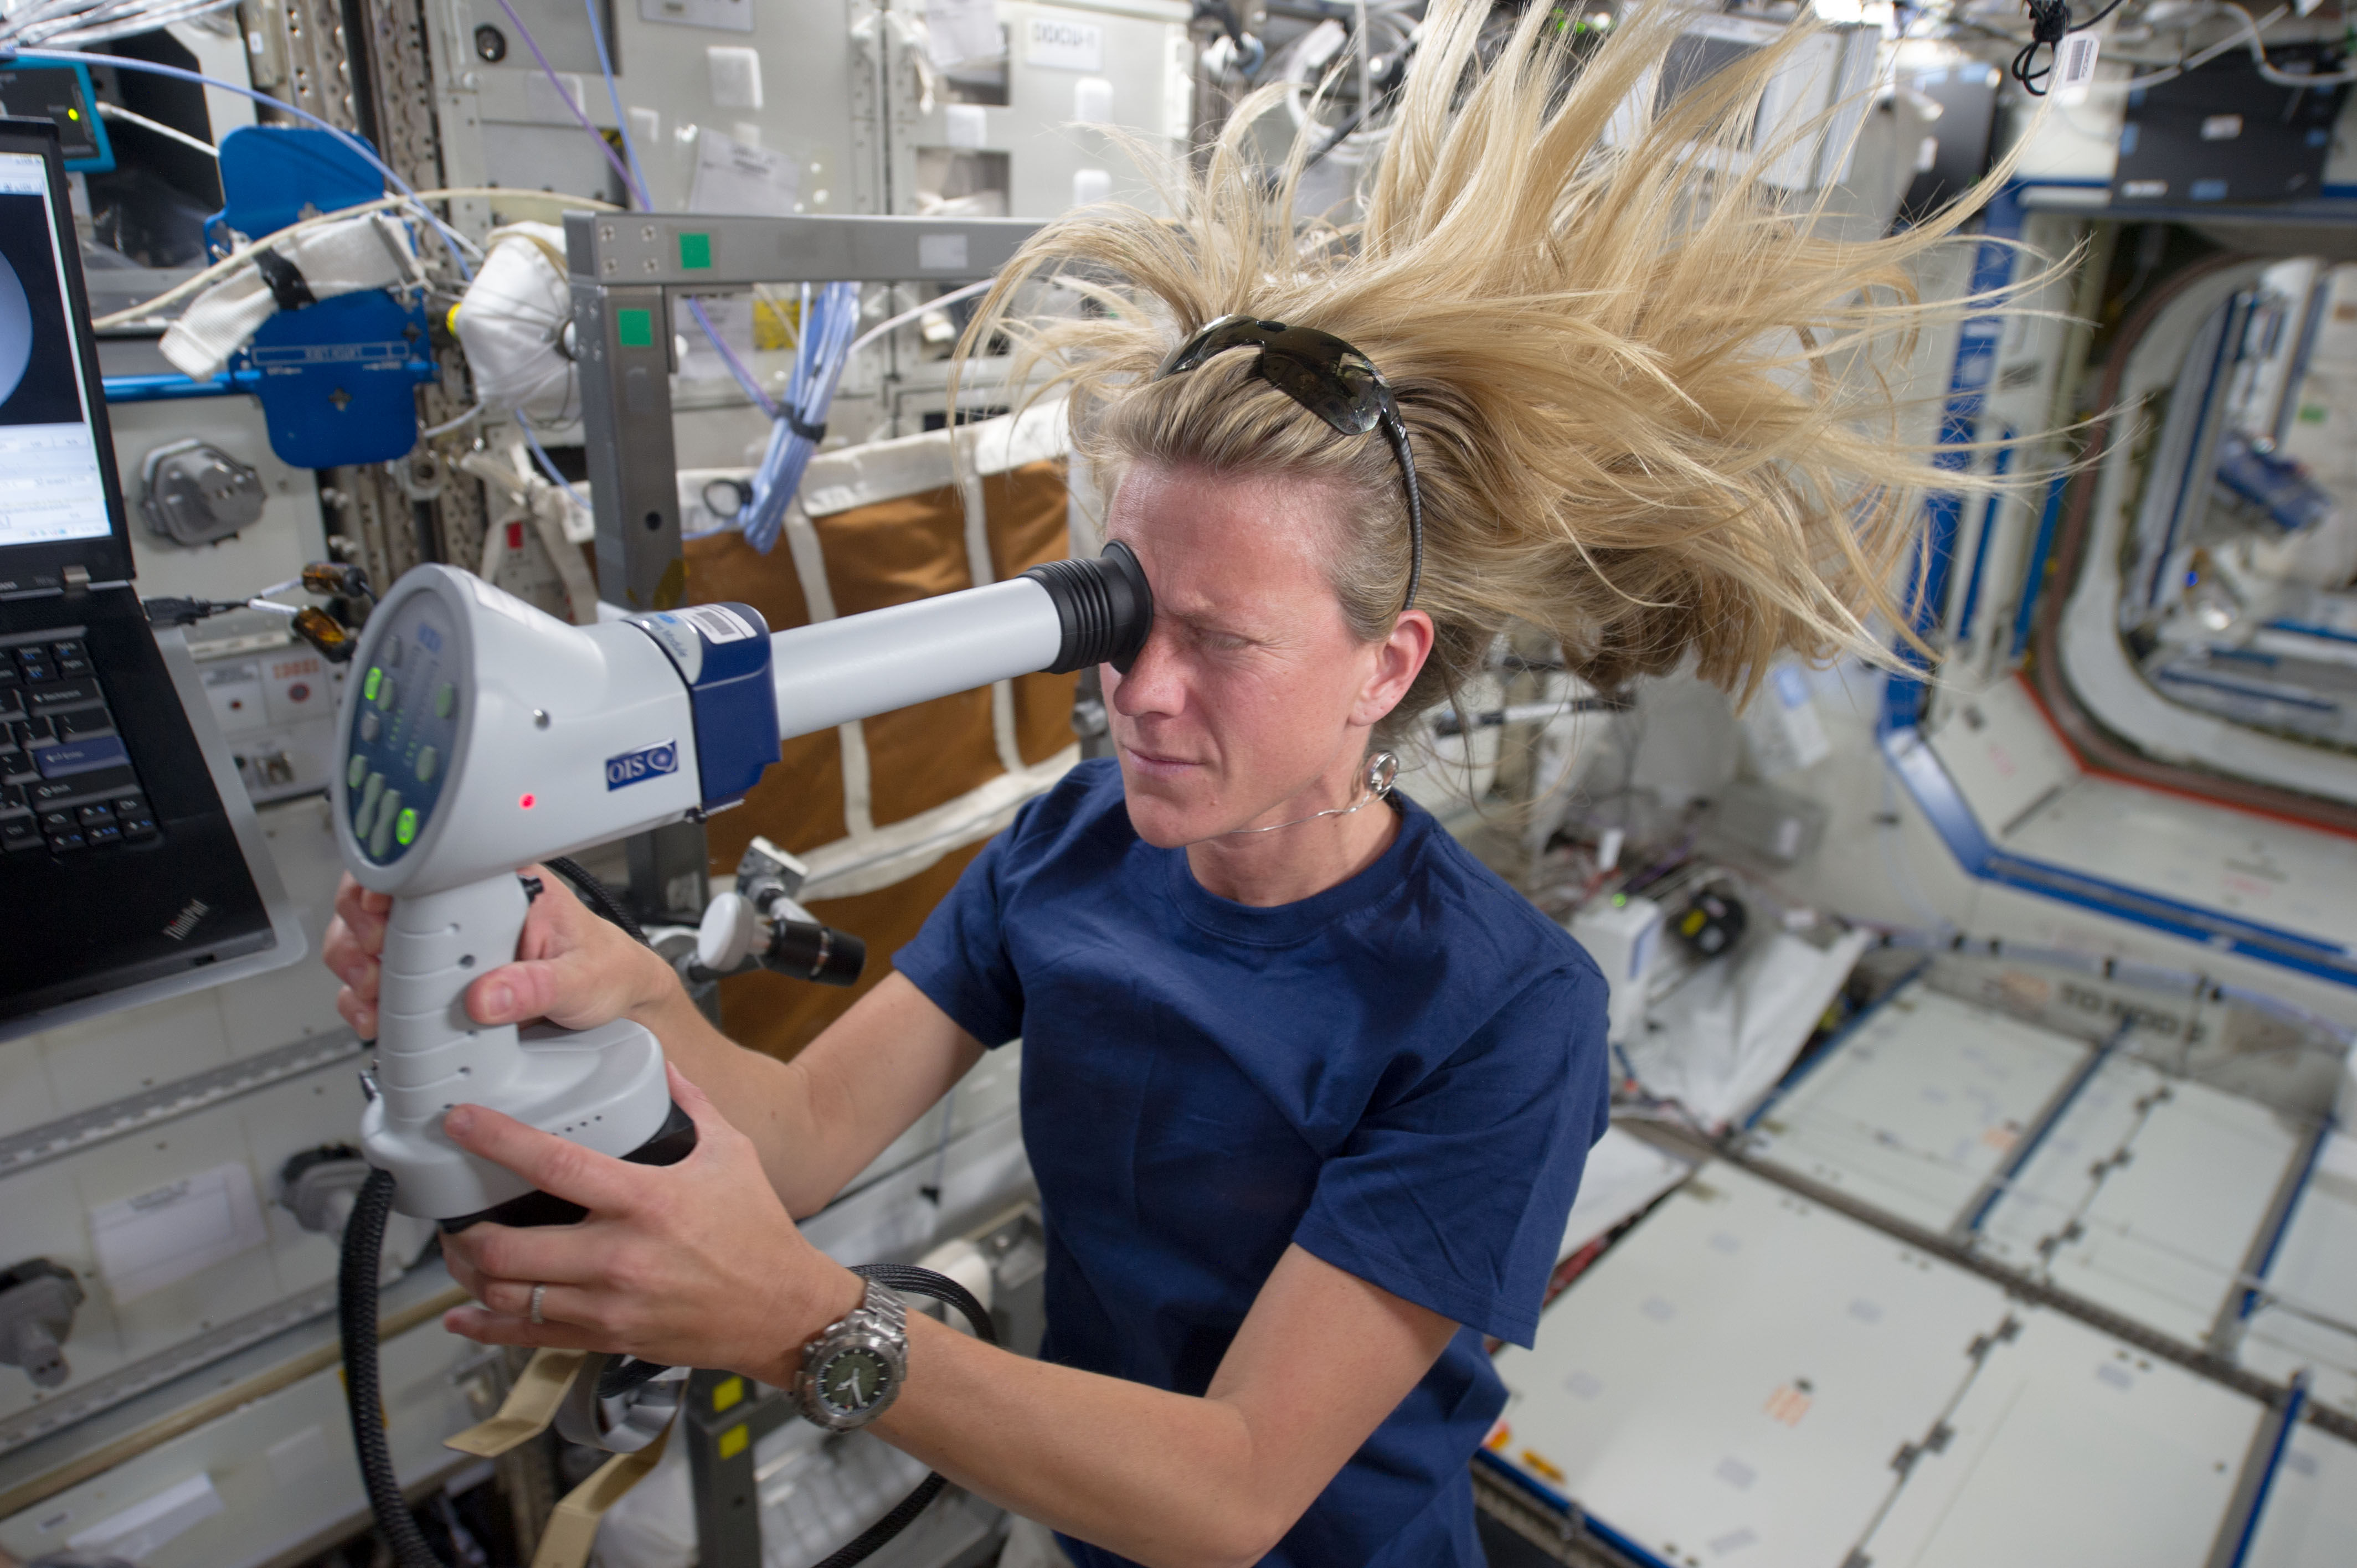 NASA and the National Space Biomedical Research Institute ...